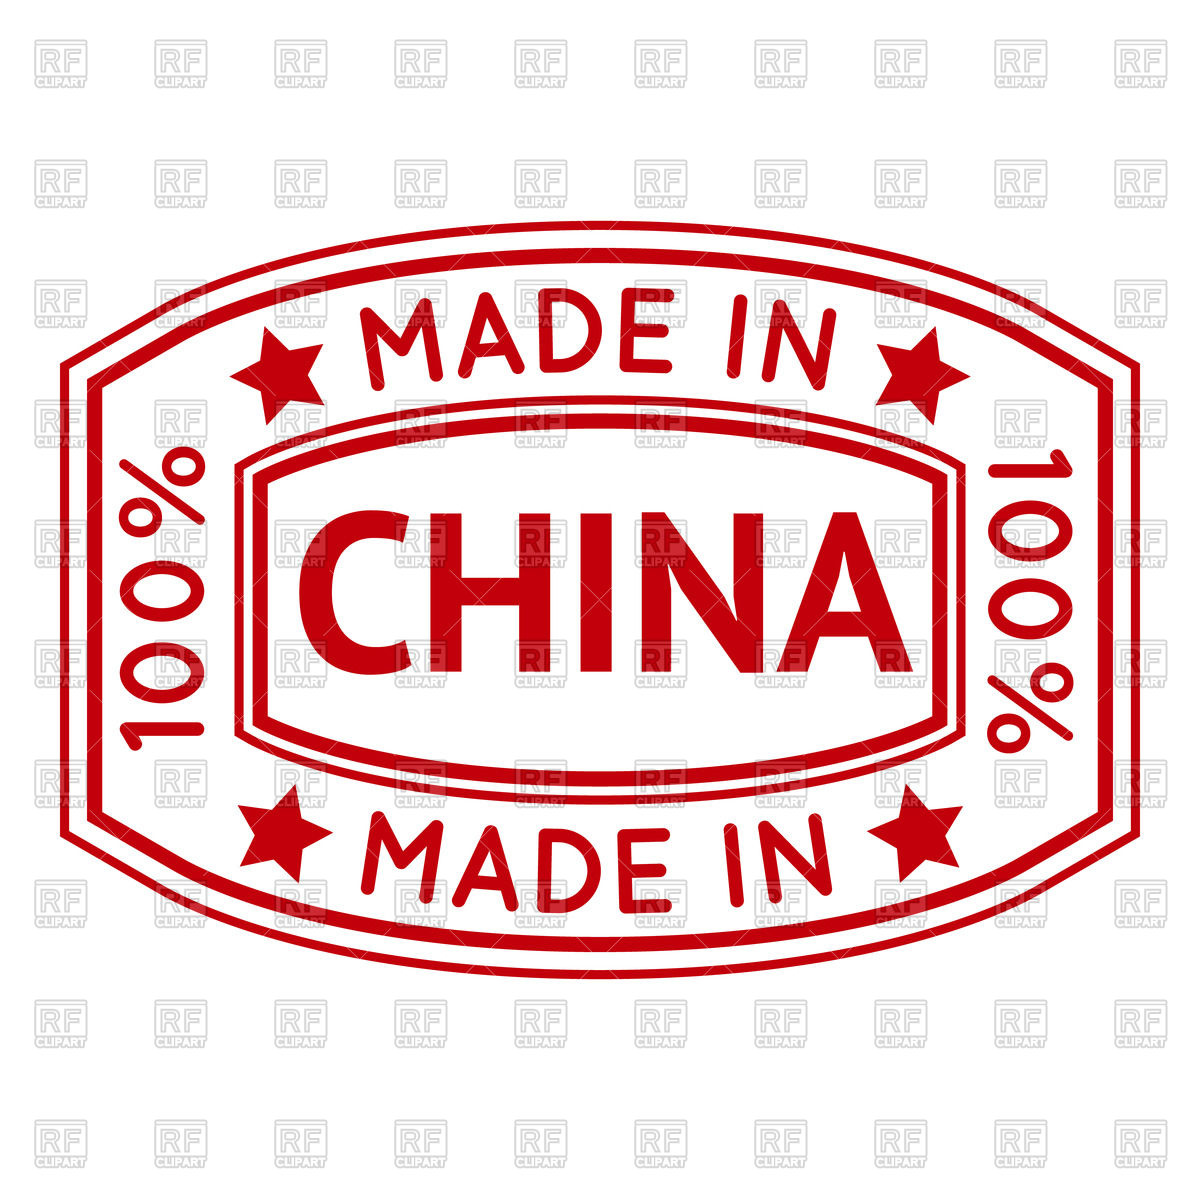 Made in China red stamp Vector Image #69565.